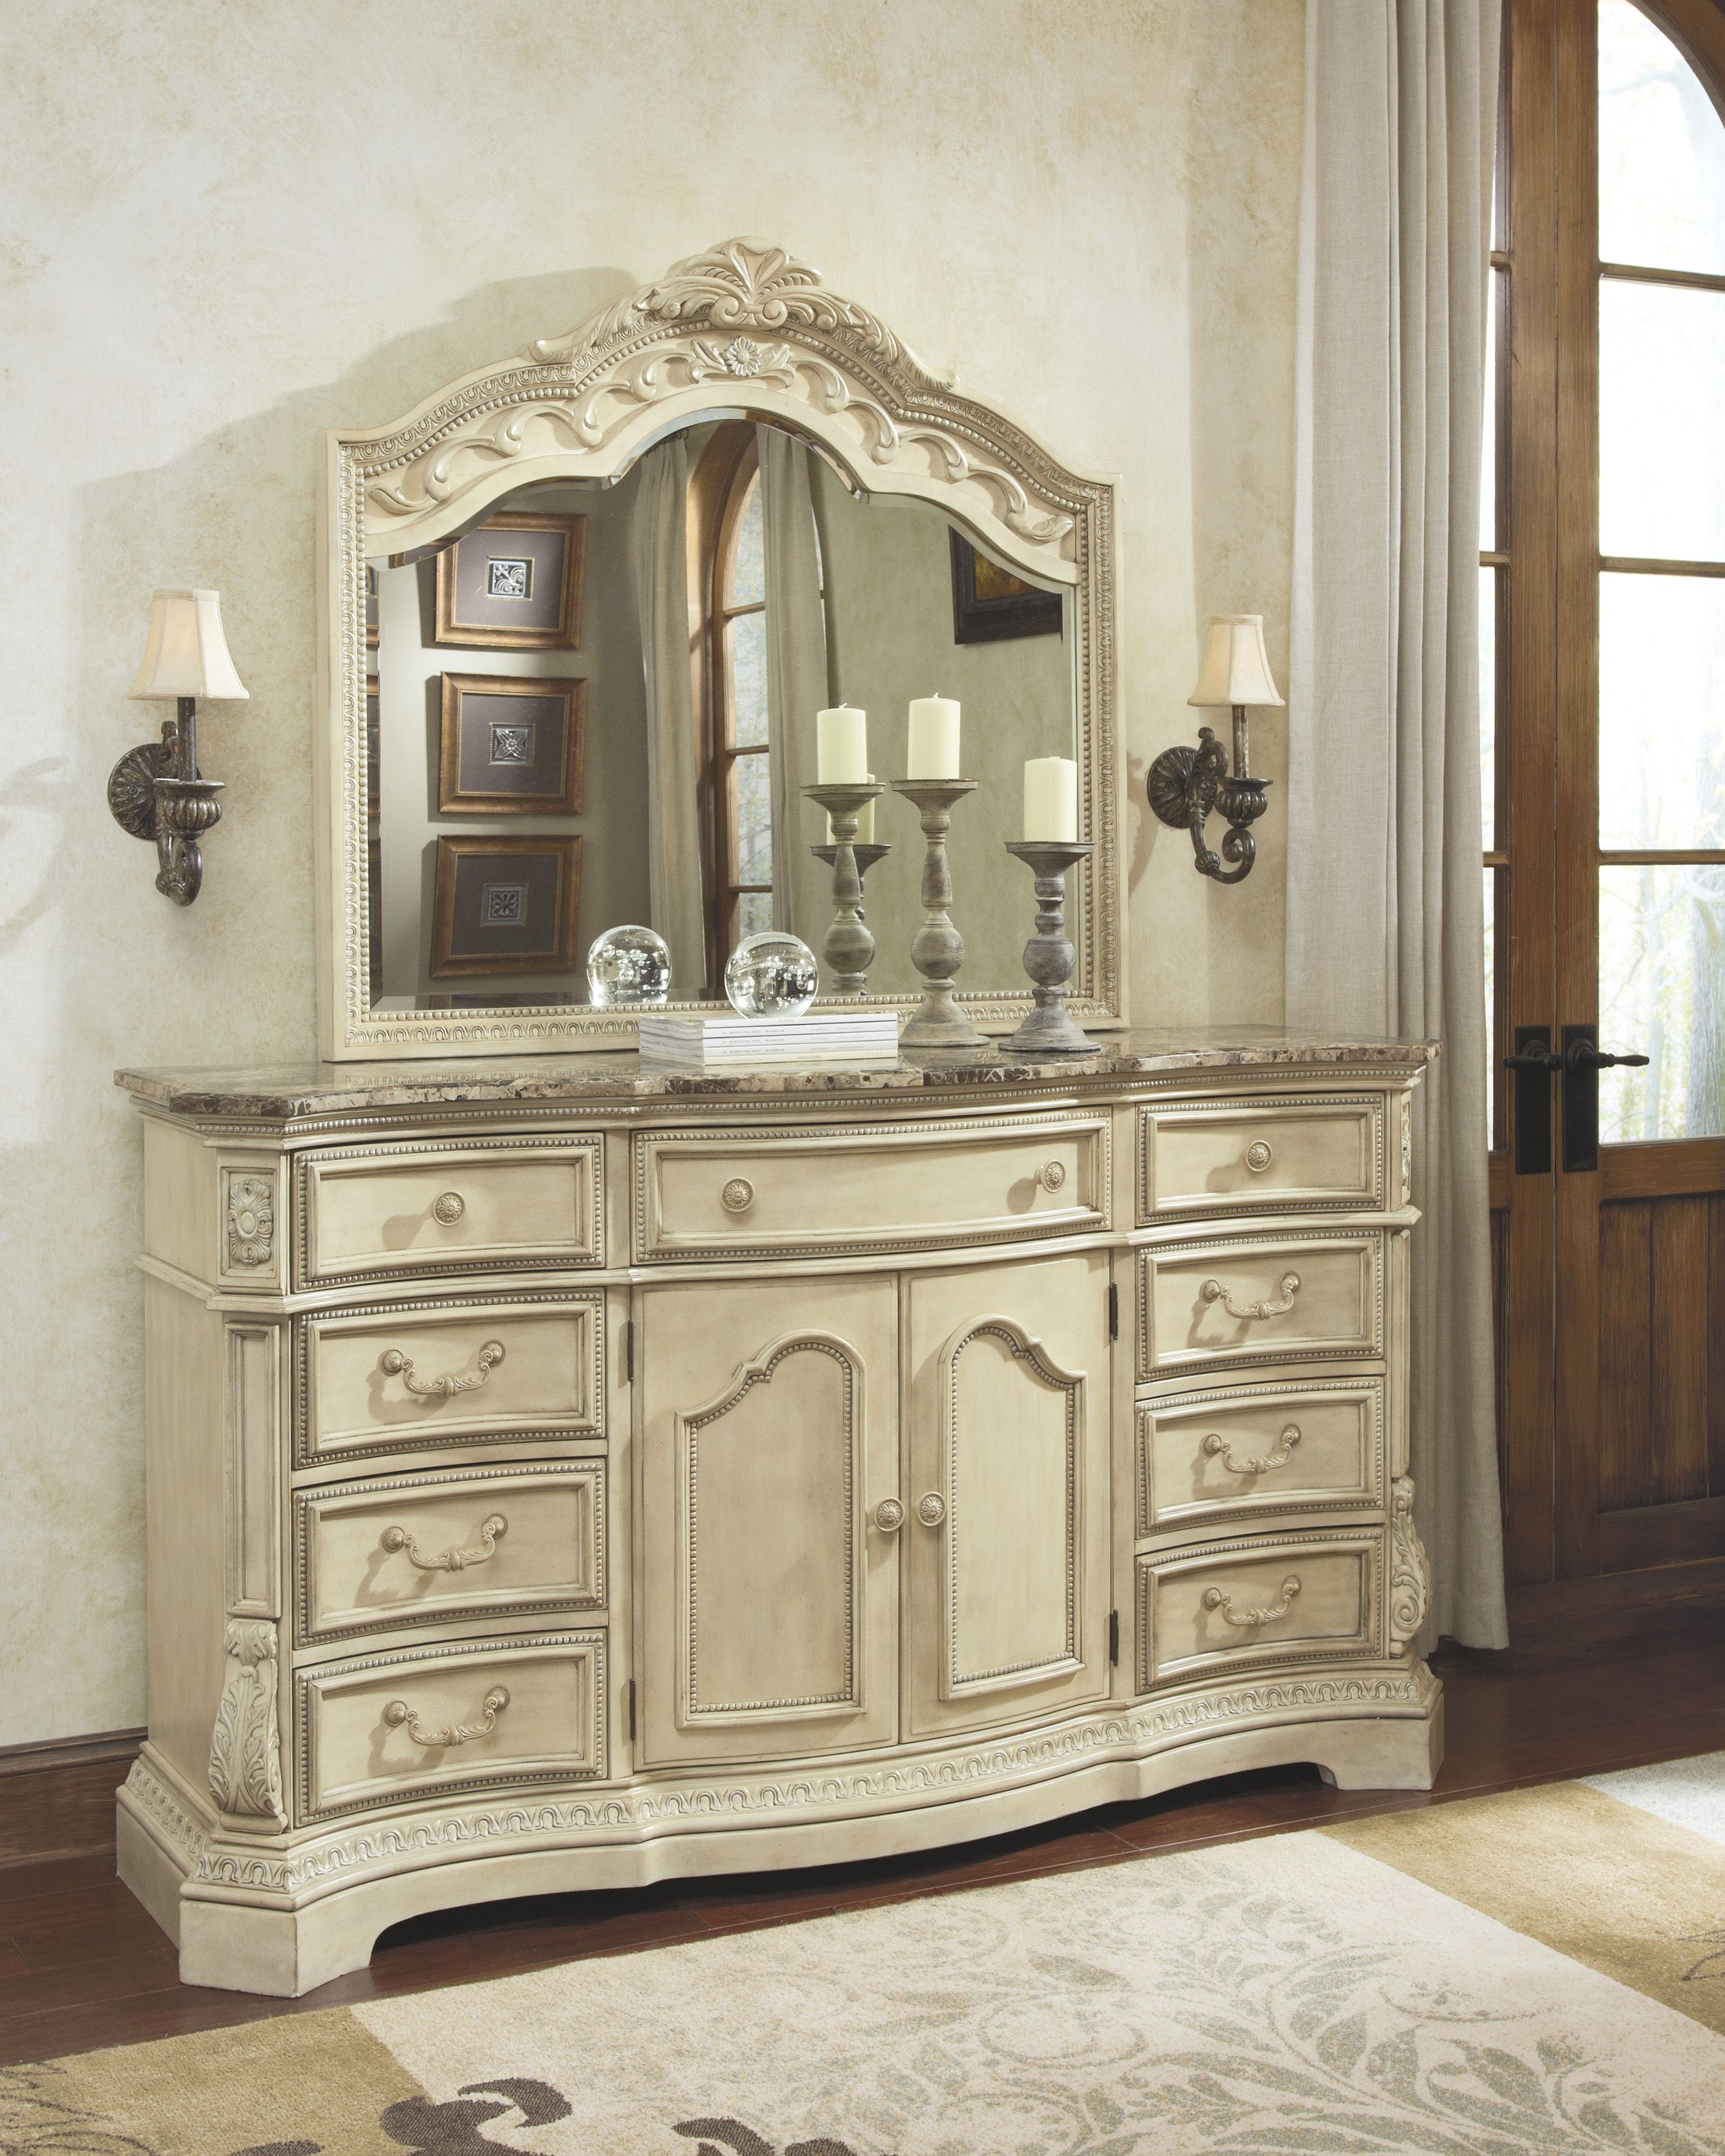 Hallway furniture with mirror  There is room for everything in this natural marble topped dresser